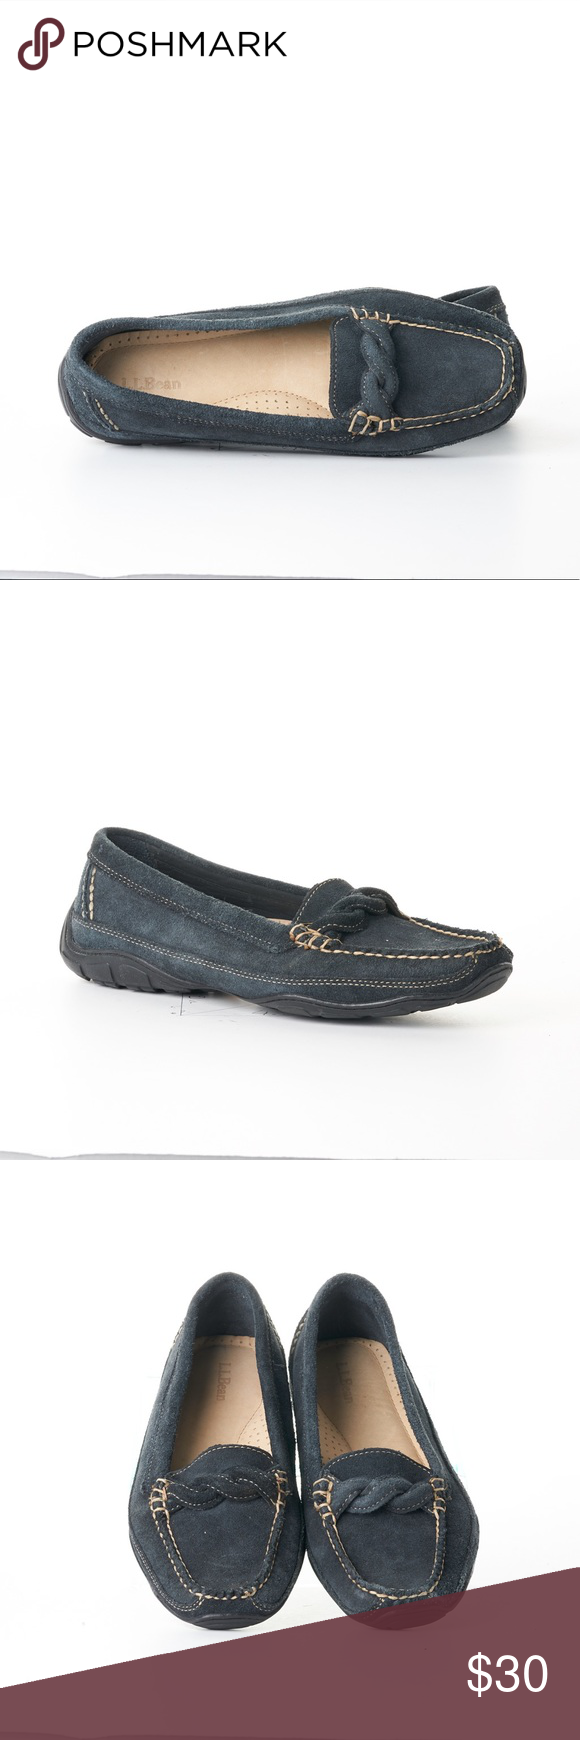 L.L. Bean Suede Flat Loafers Size 8.5 Wide Blue. L.L. Bean Women's Suede Flat Loafers With Knot Decorations. Size 8.5 Wide Bluish Green. Excellent used condition. There are couple of scuff marks on the the shoes and they are not noticable. Very comfortable and classy. They can go with any outfit.  L.L. Bean Shoes Flats & Loafers